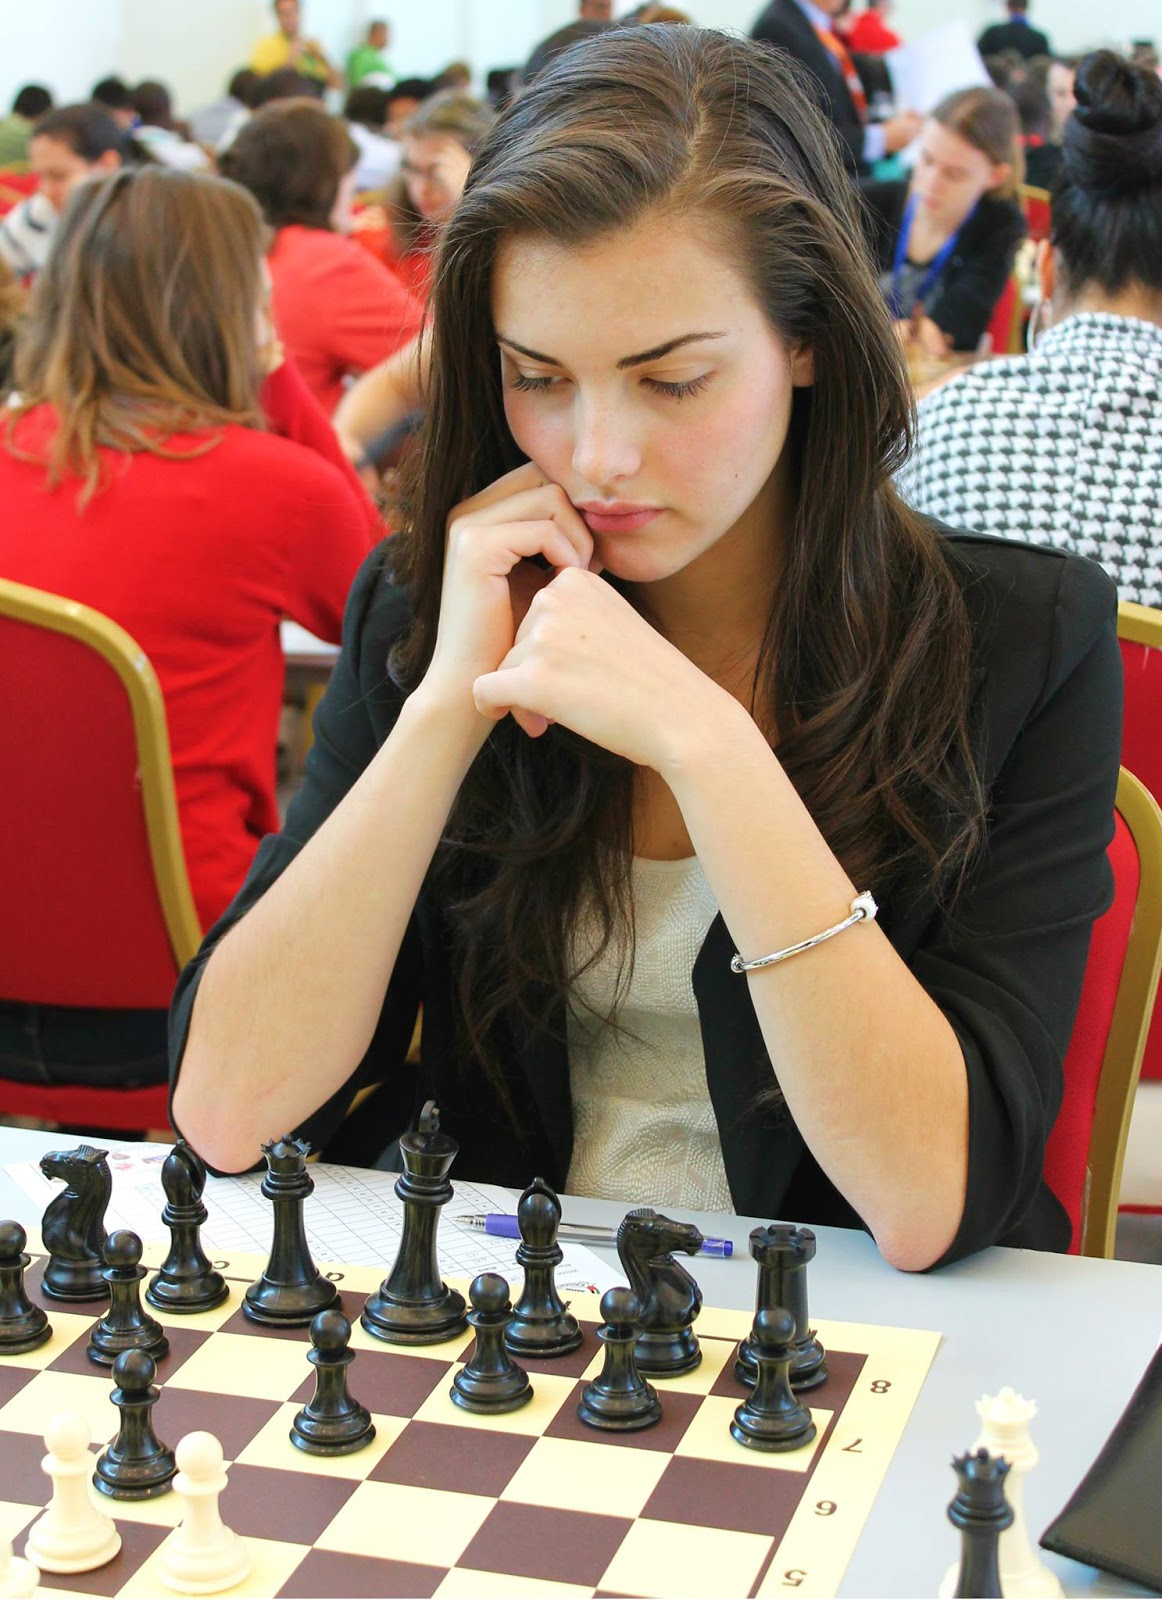 Meet and greet the wonderful Chess Princess Alexandra Botez from Canada